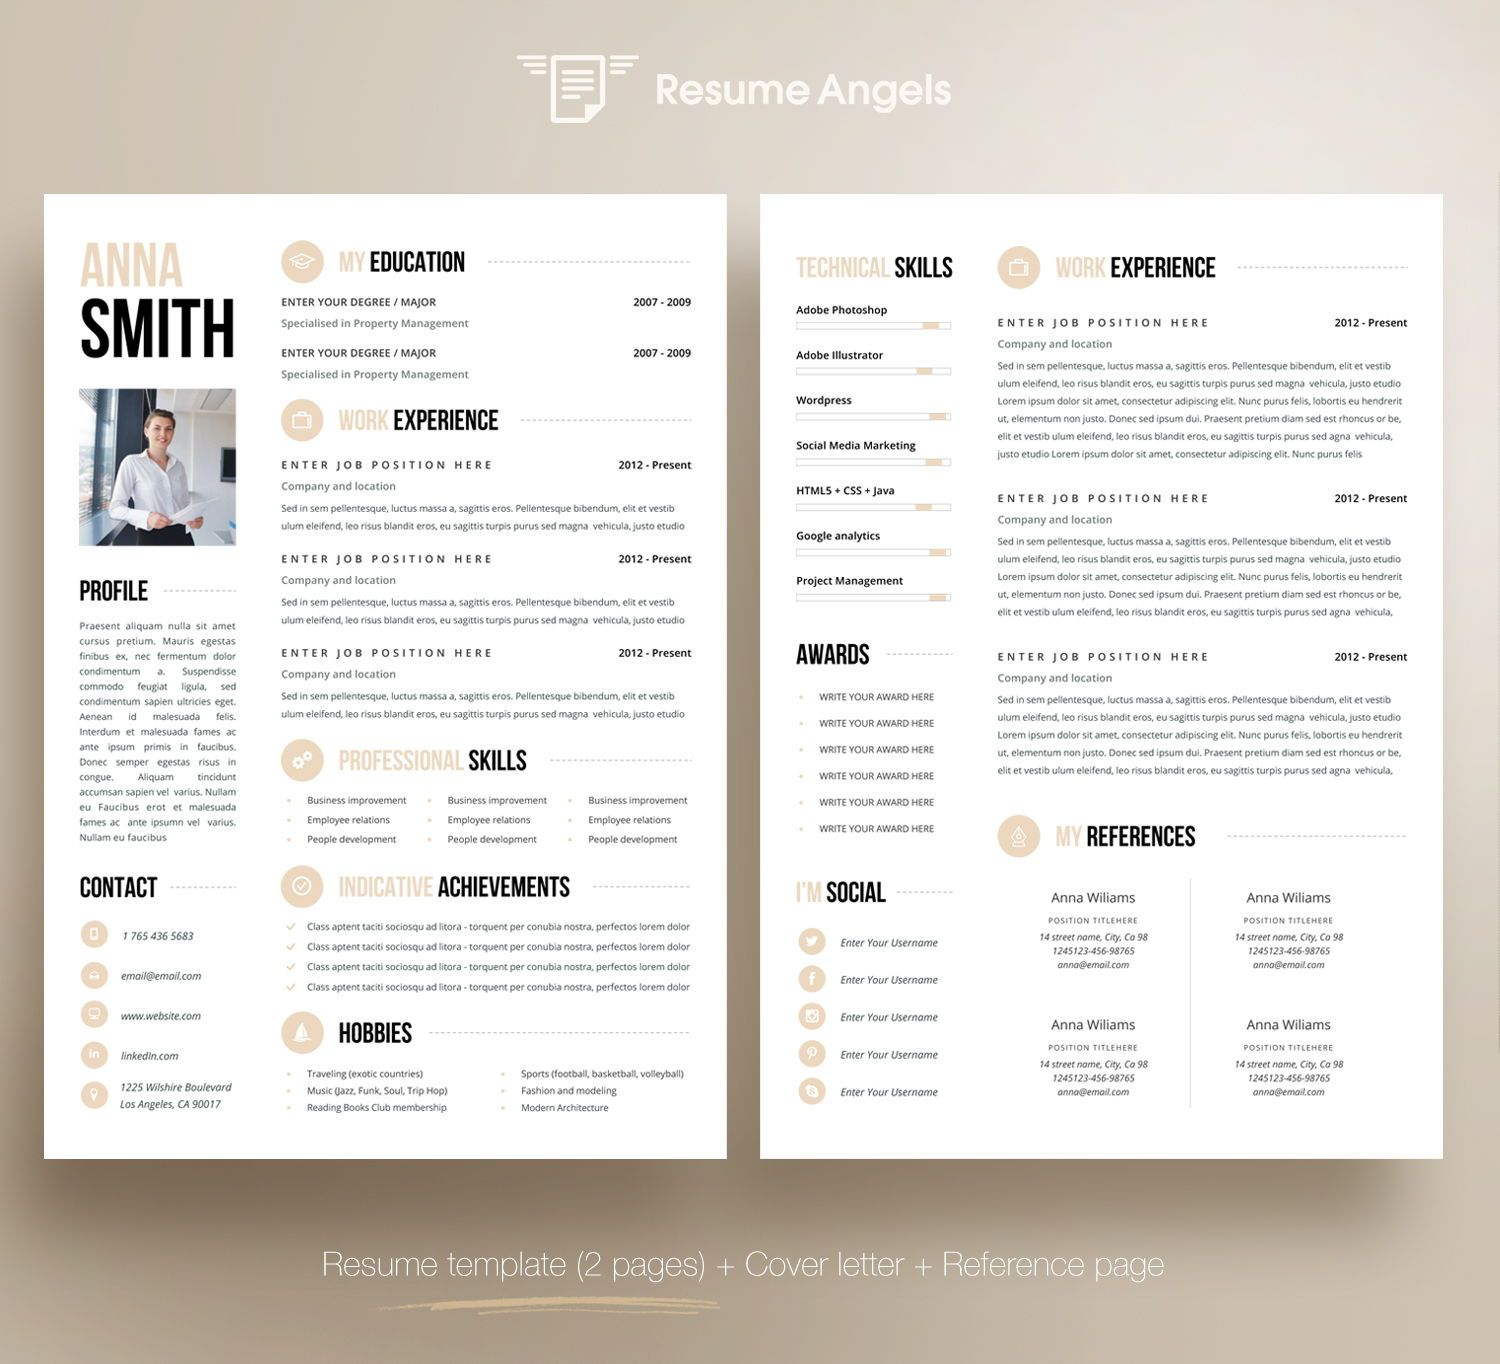 Professional Resume Template, Clean & Modern Resume